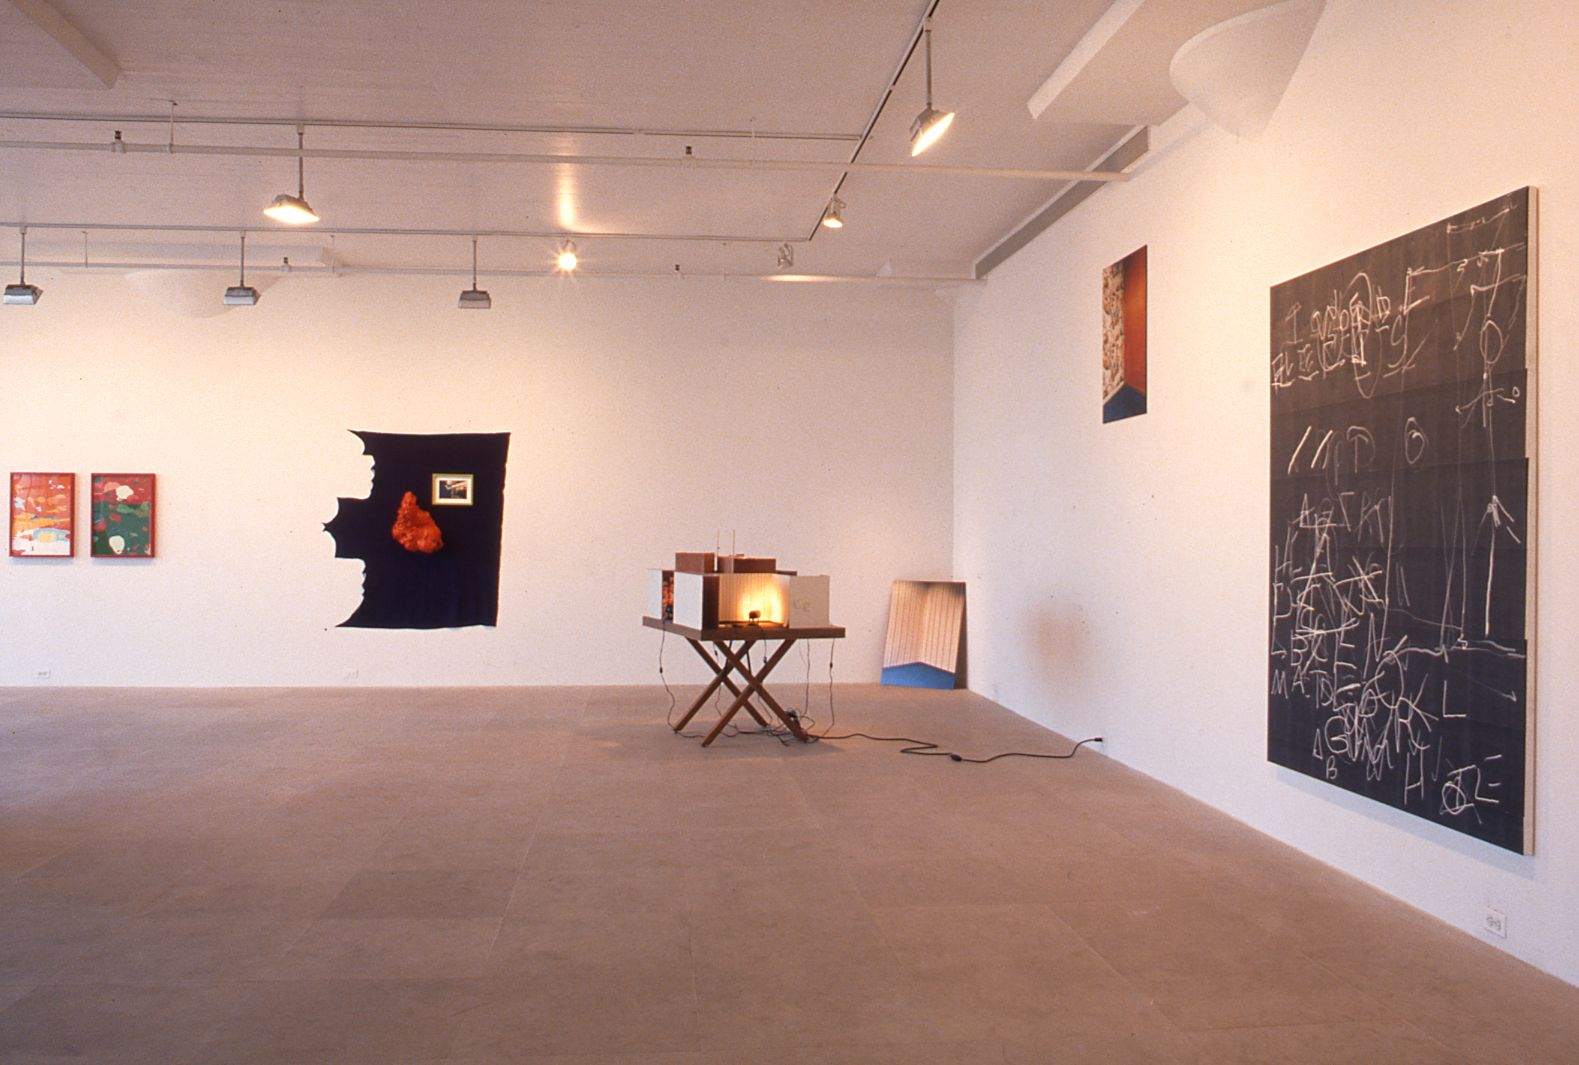 Installation view, Summer Show, Greene Naftali, New York, 1996